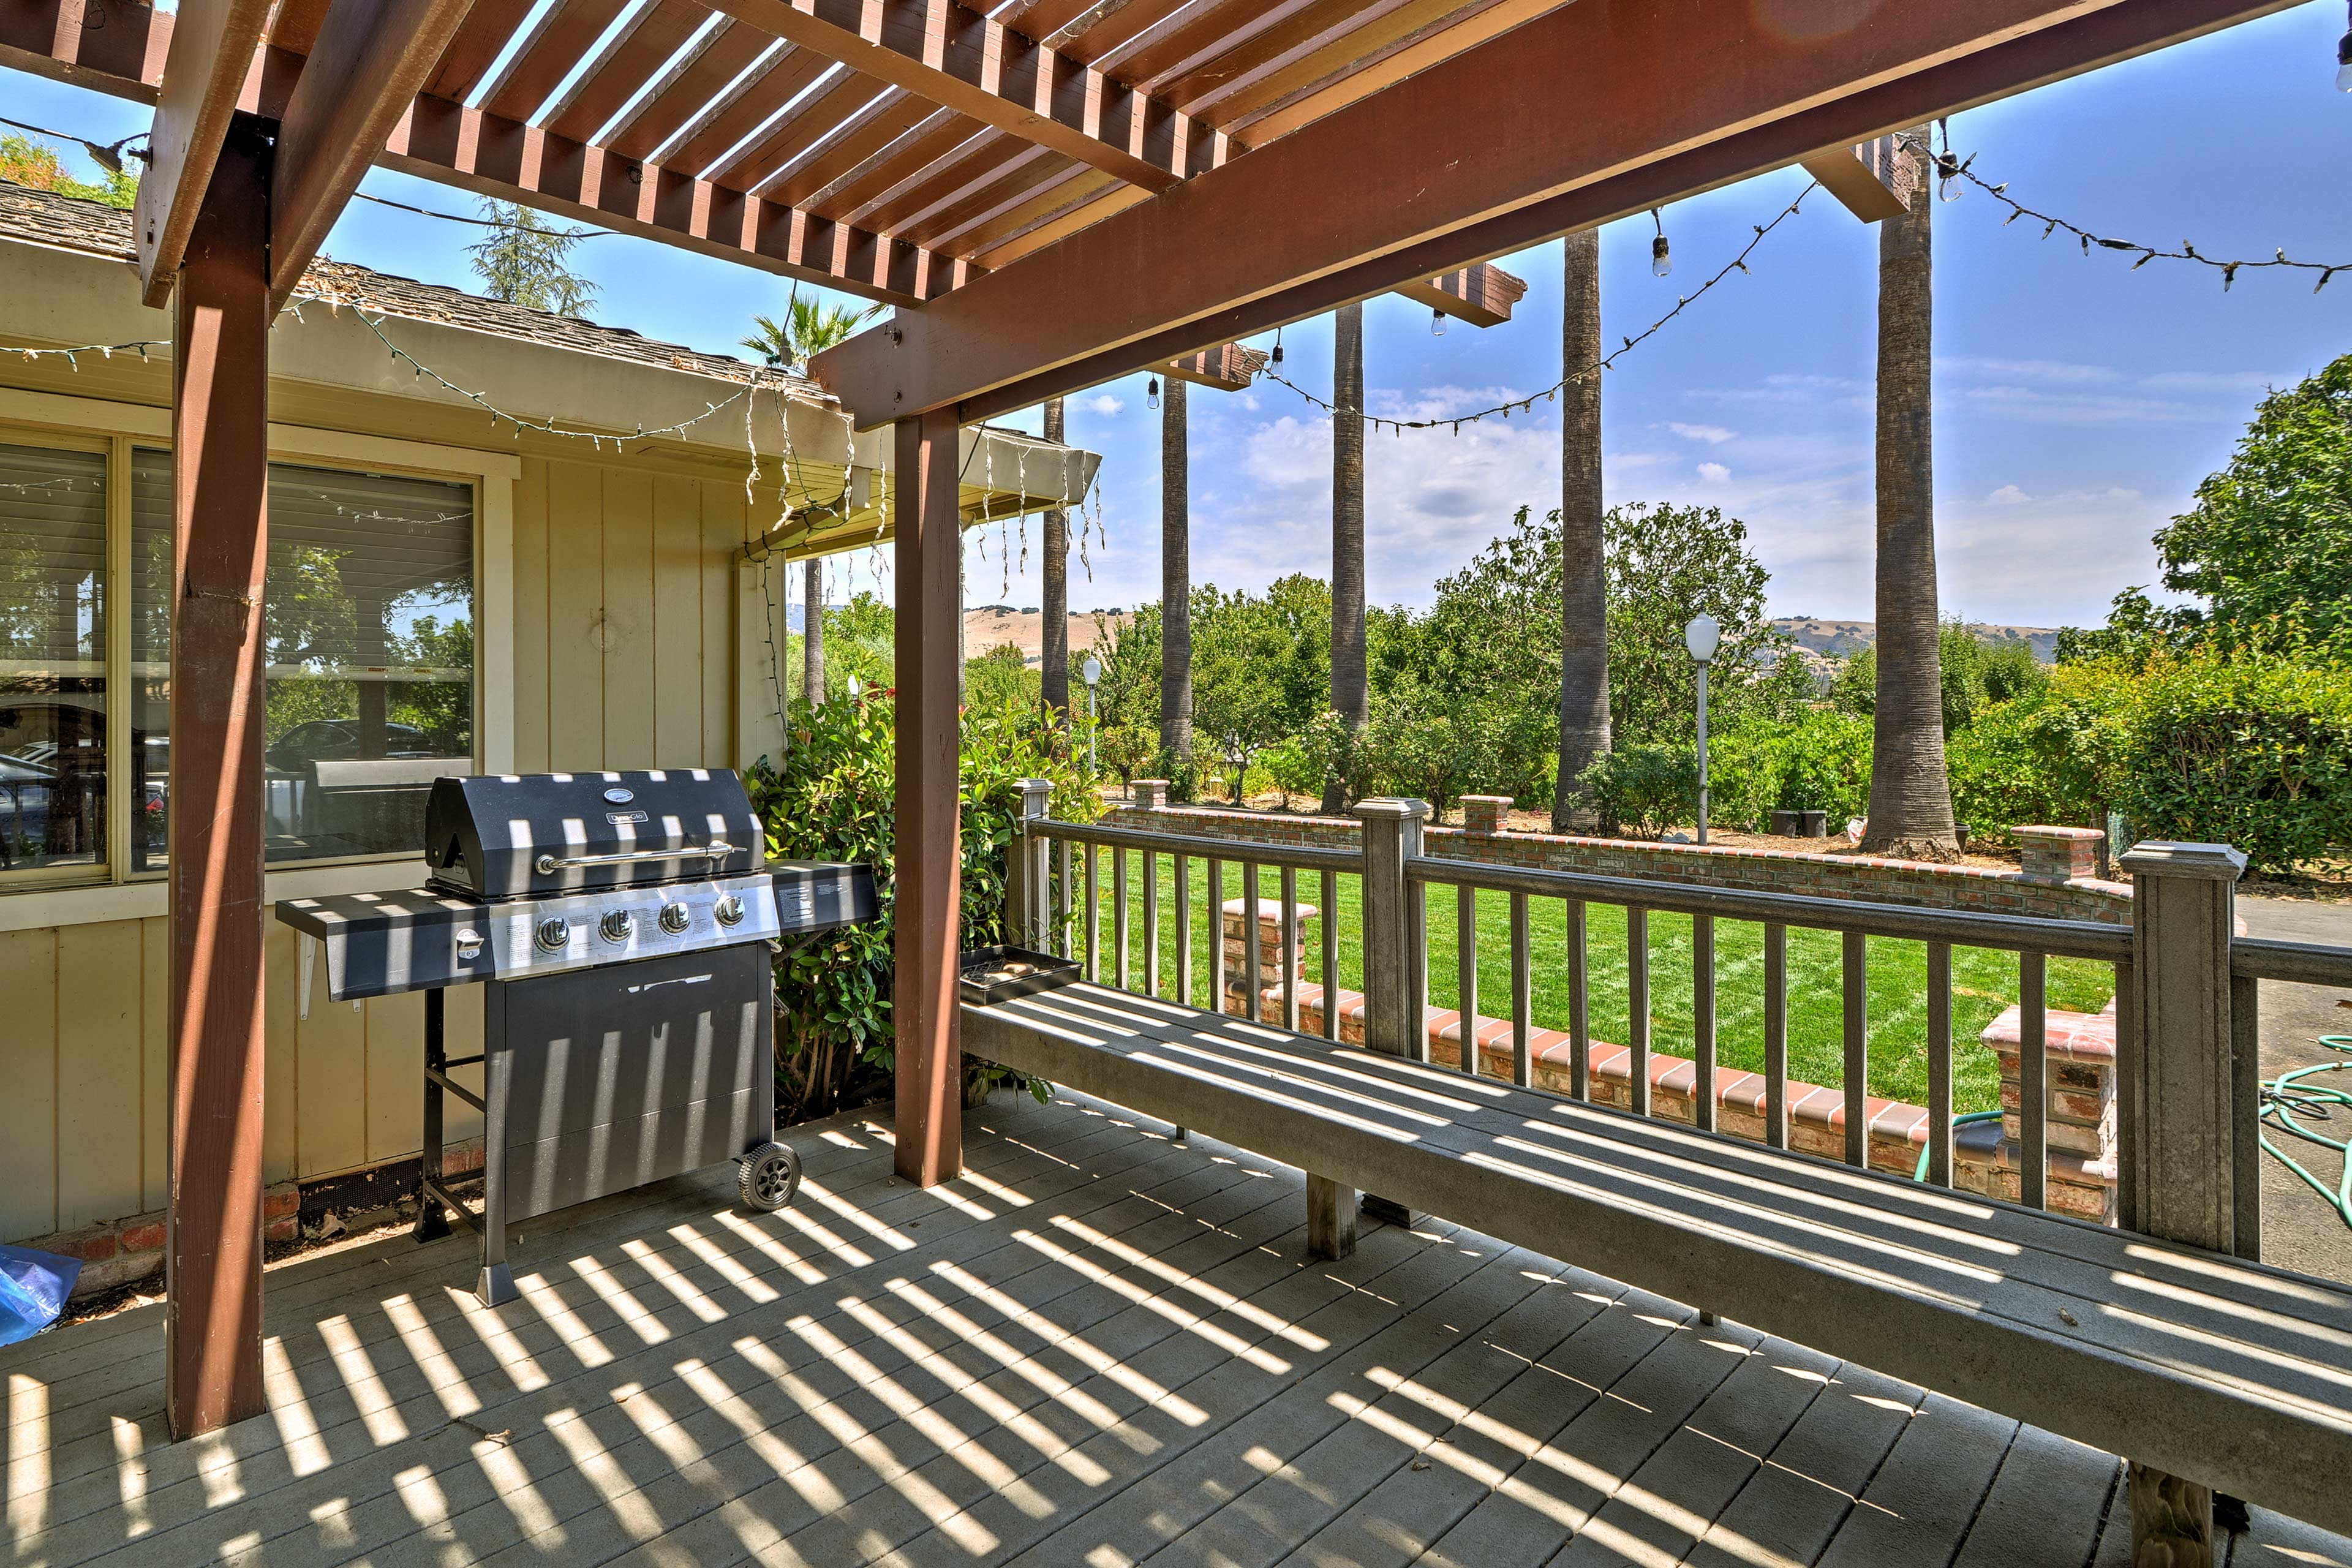 A gas grill, pergola, and bench seating are perfect for an afternoon barbecue.